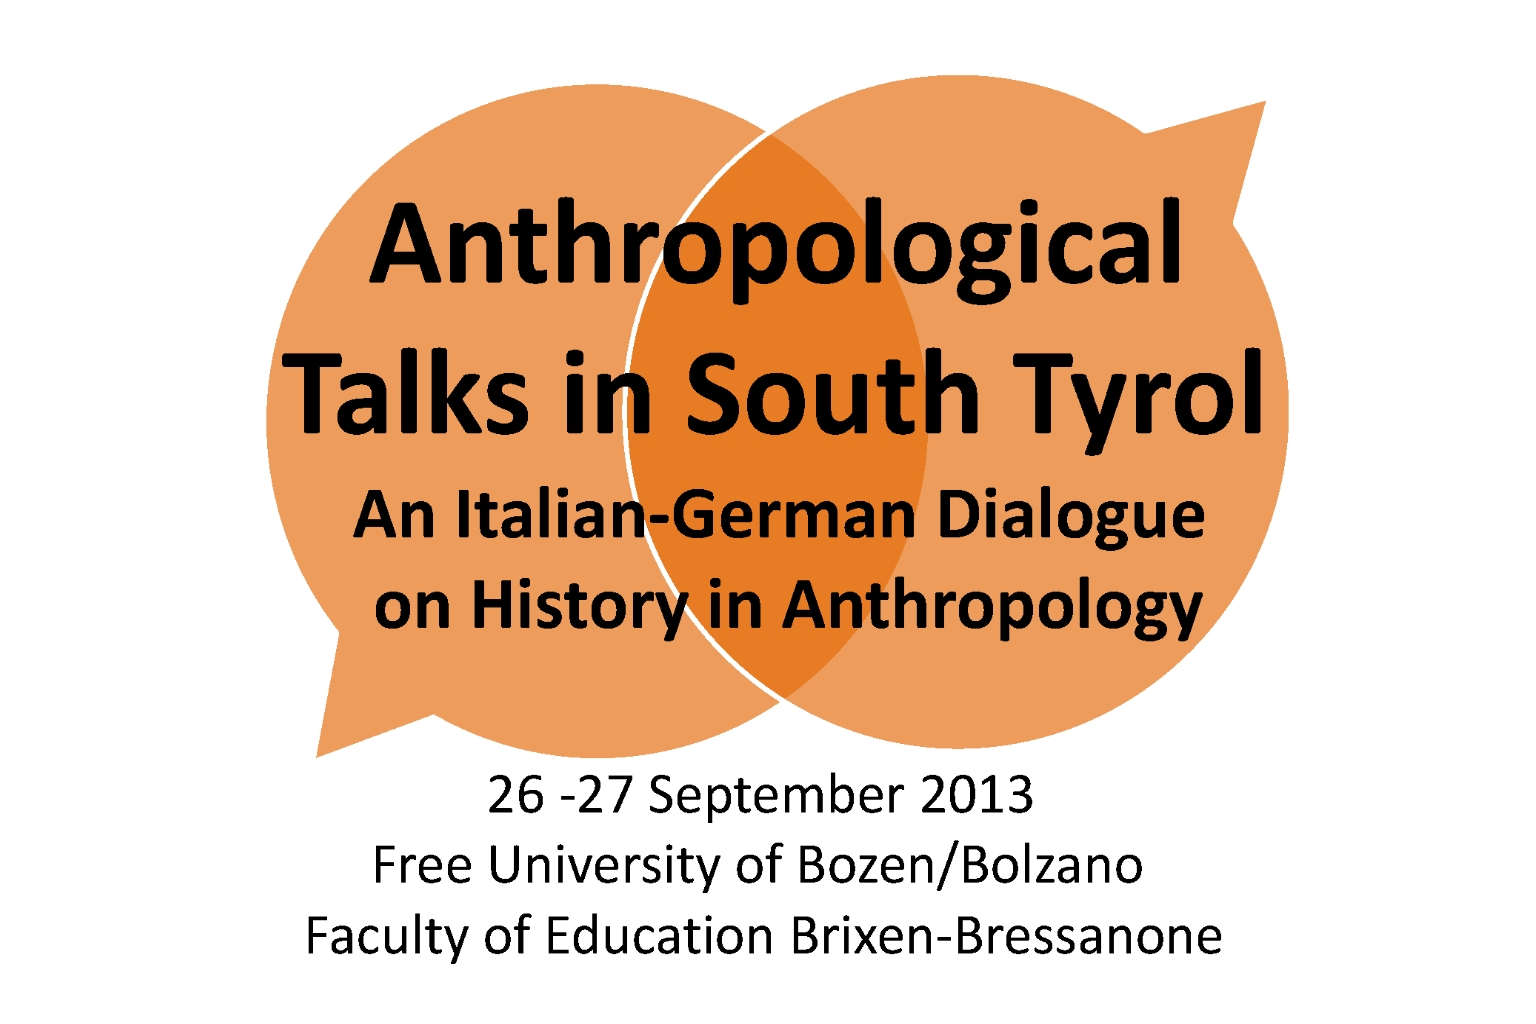 Anthropological Talks